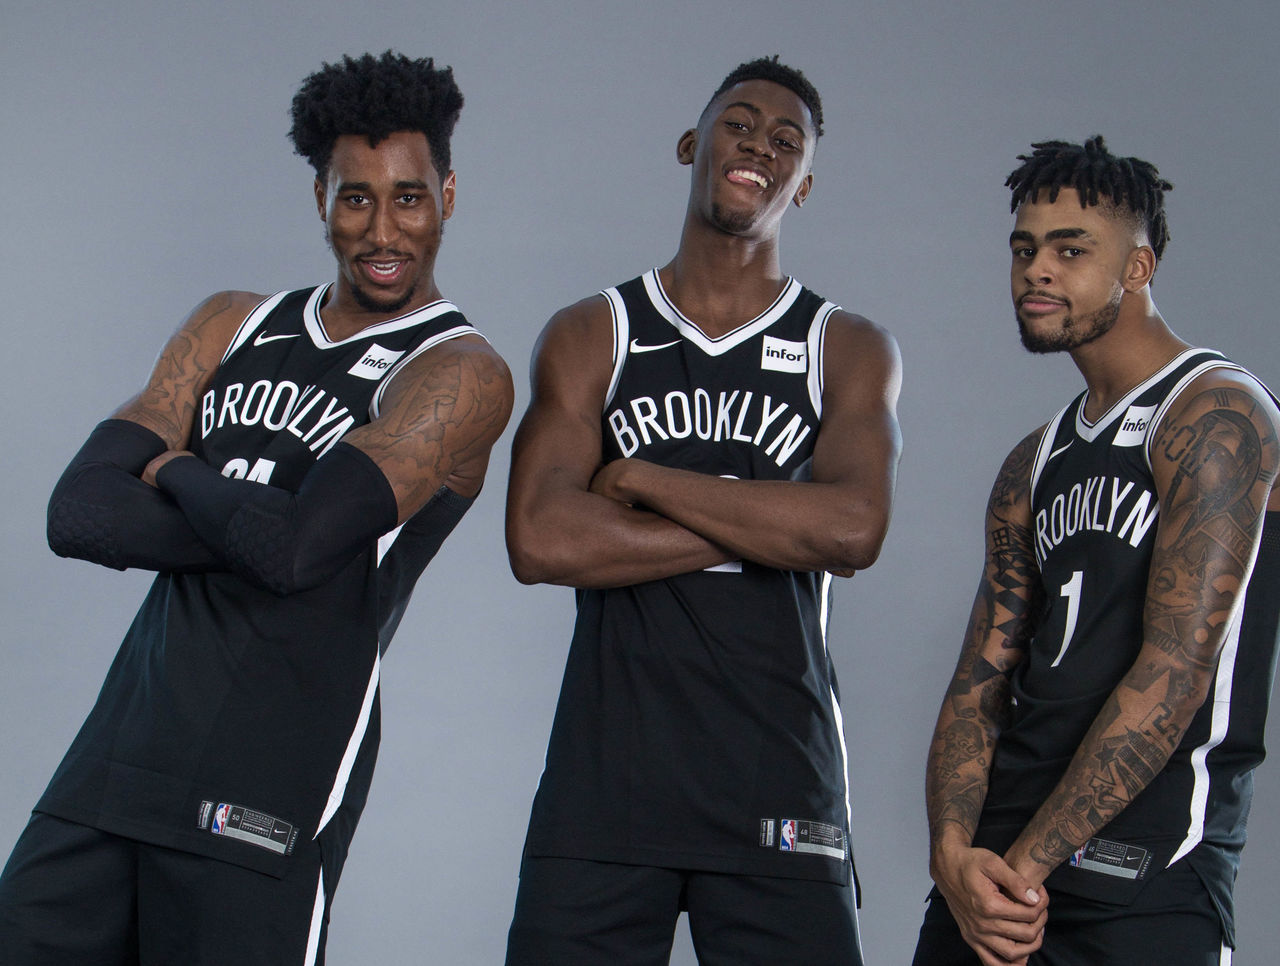 Cropped 2017 09 25t201649z 2029838989 nocid rtrmadp 3 nba brooklyn nets media day